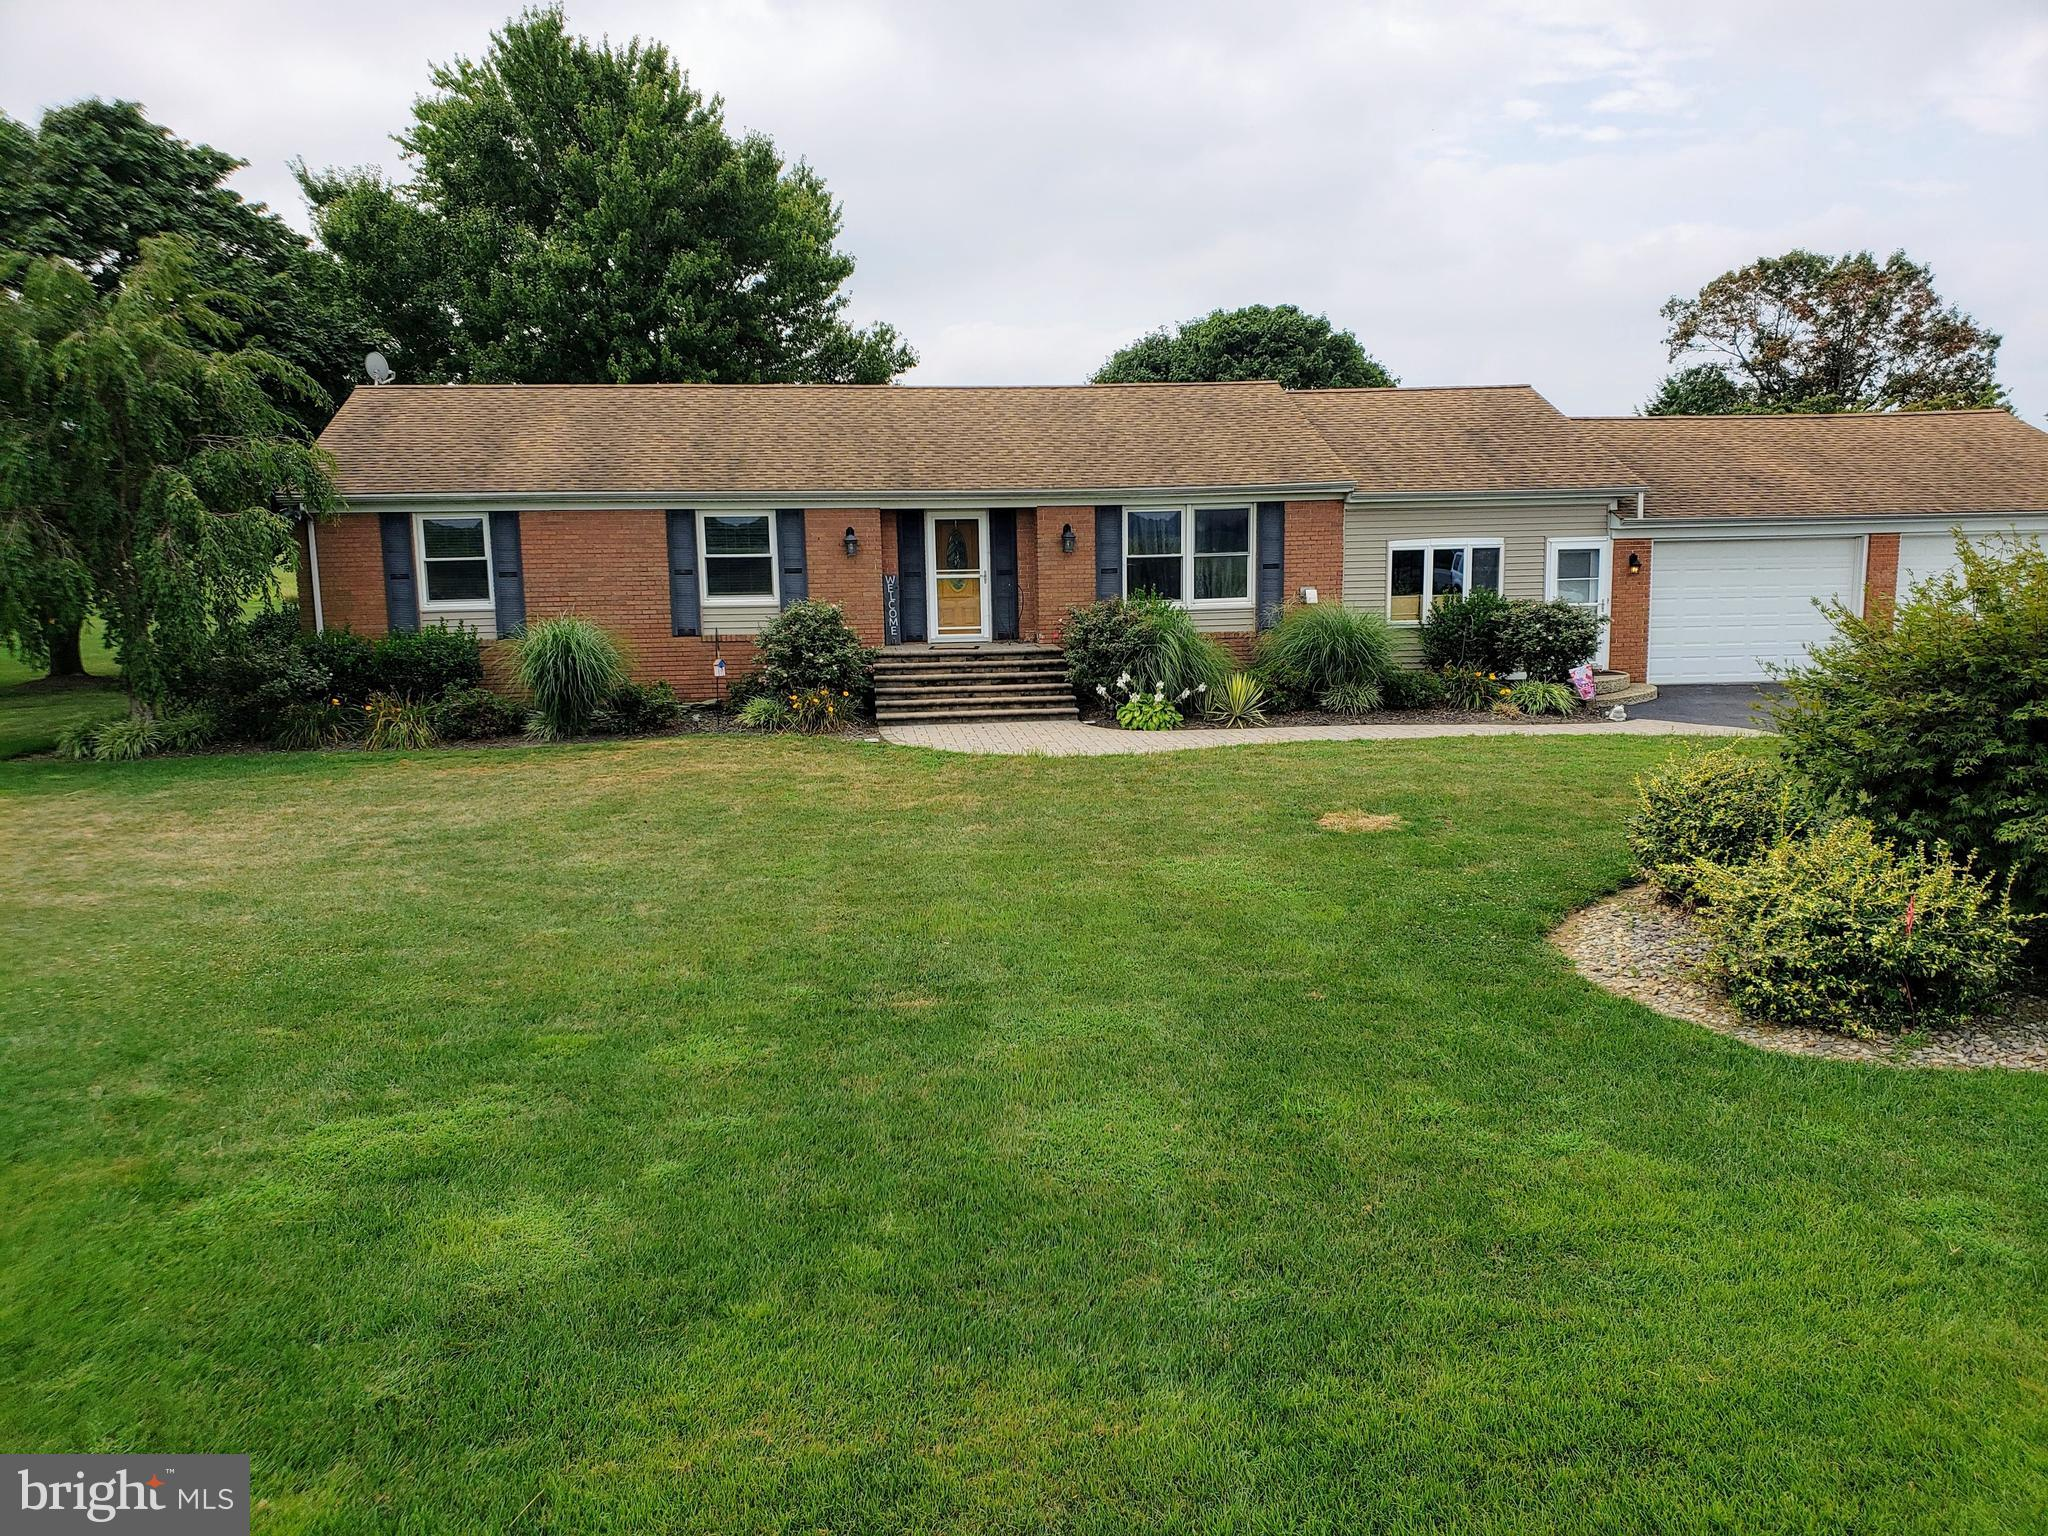 410 Crystal Beach Rd, Cecilton, MD, 21913